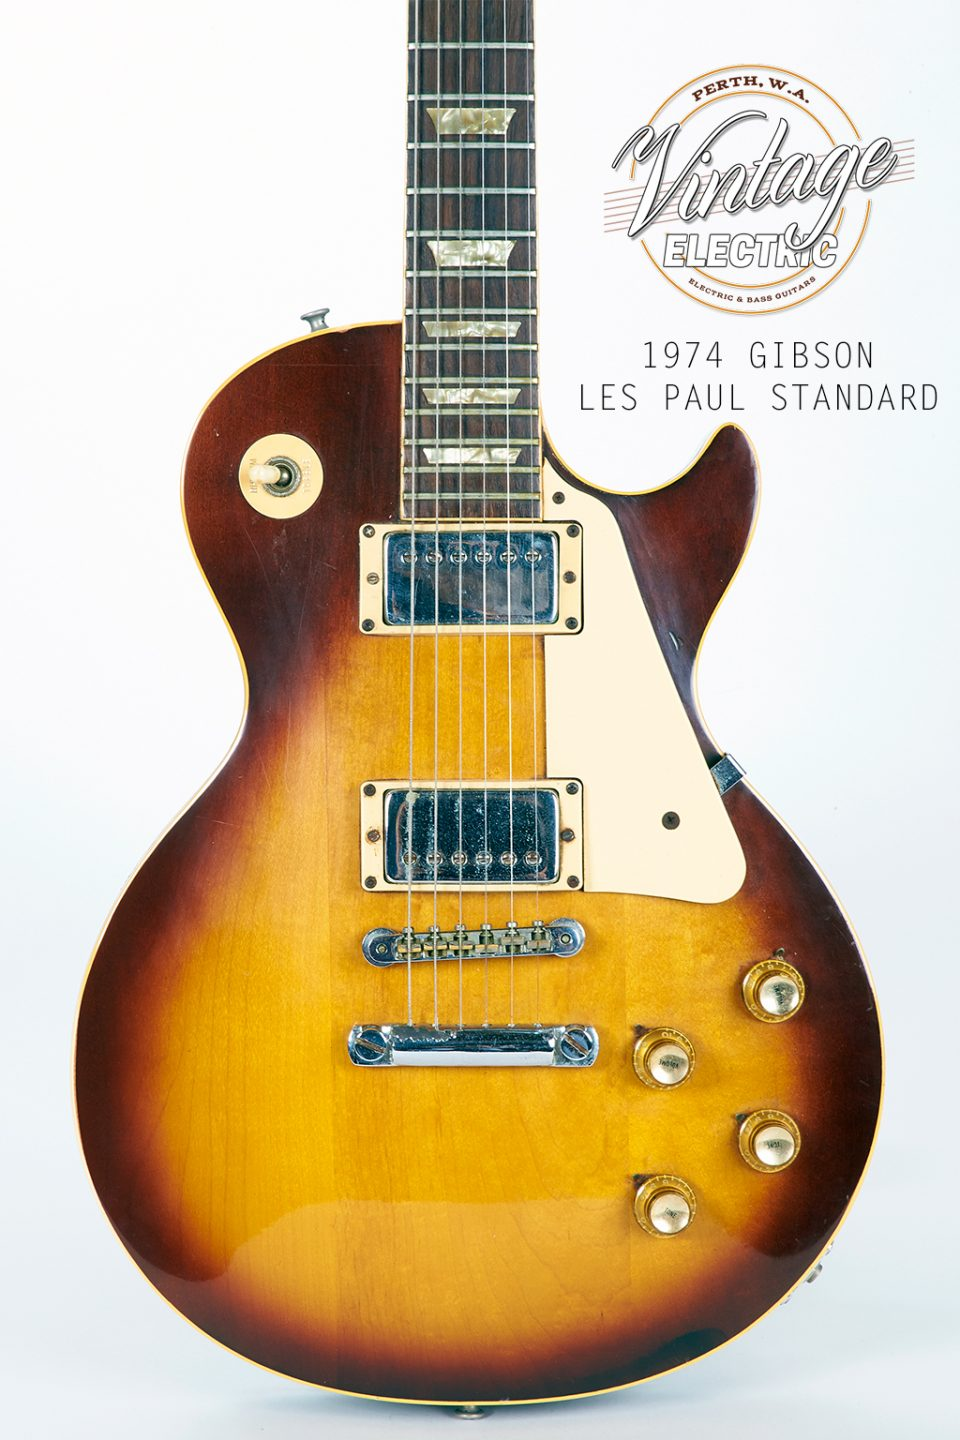 1974 Gibson Les Paul Body